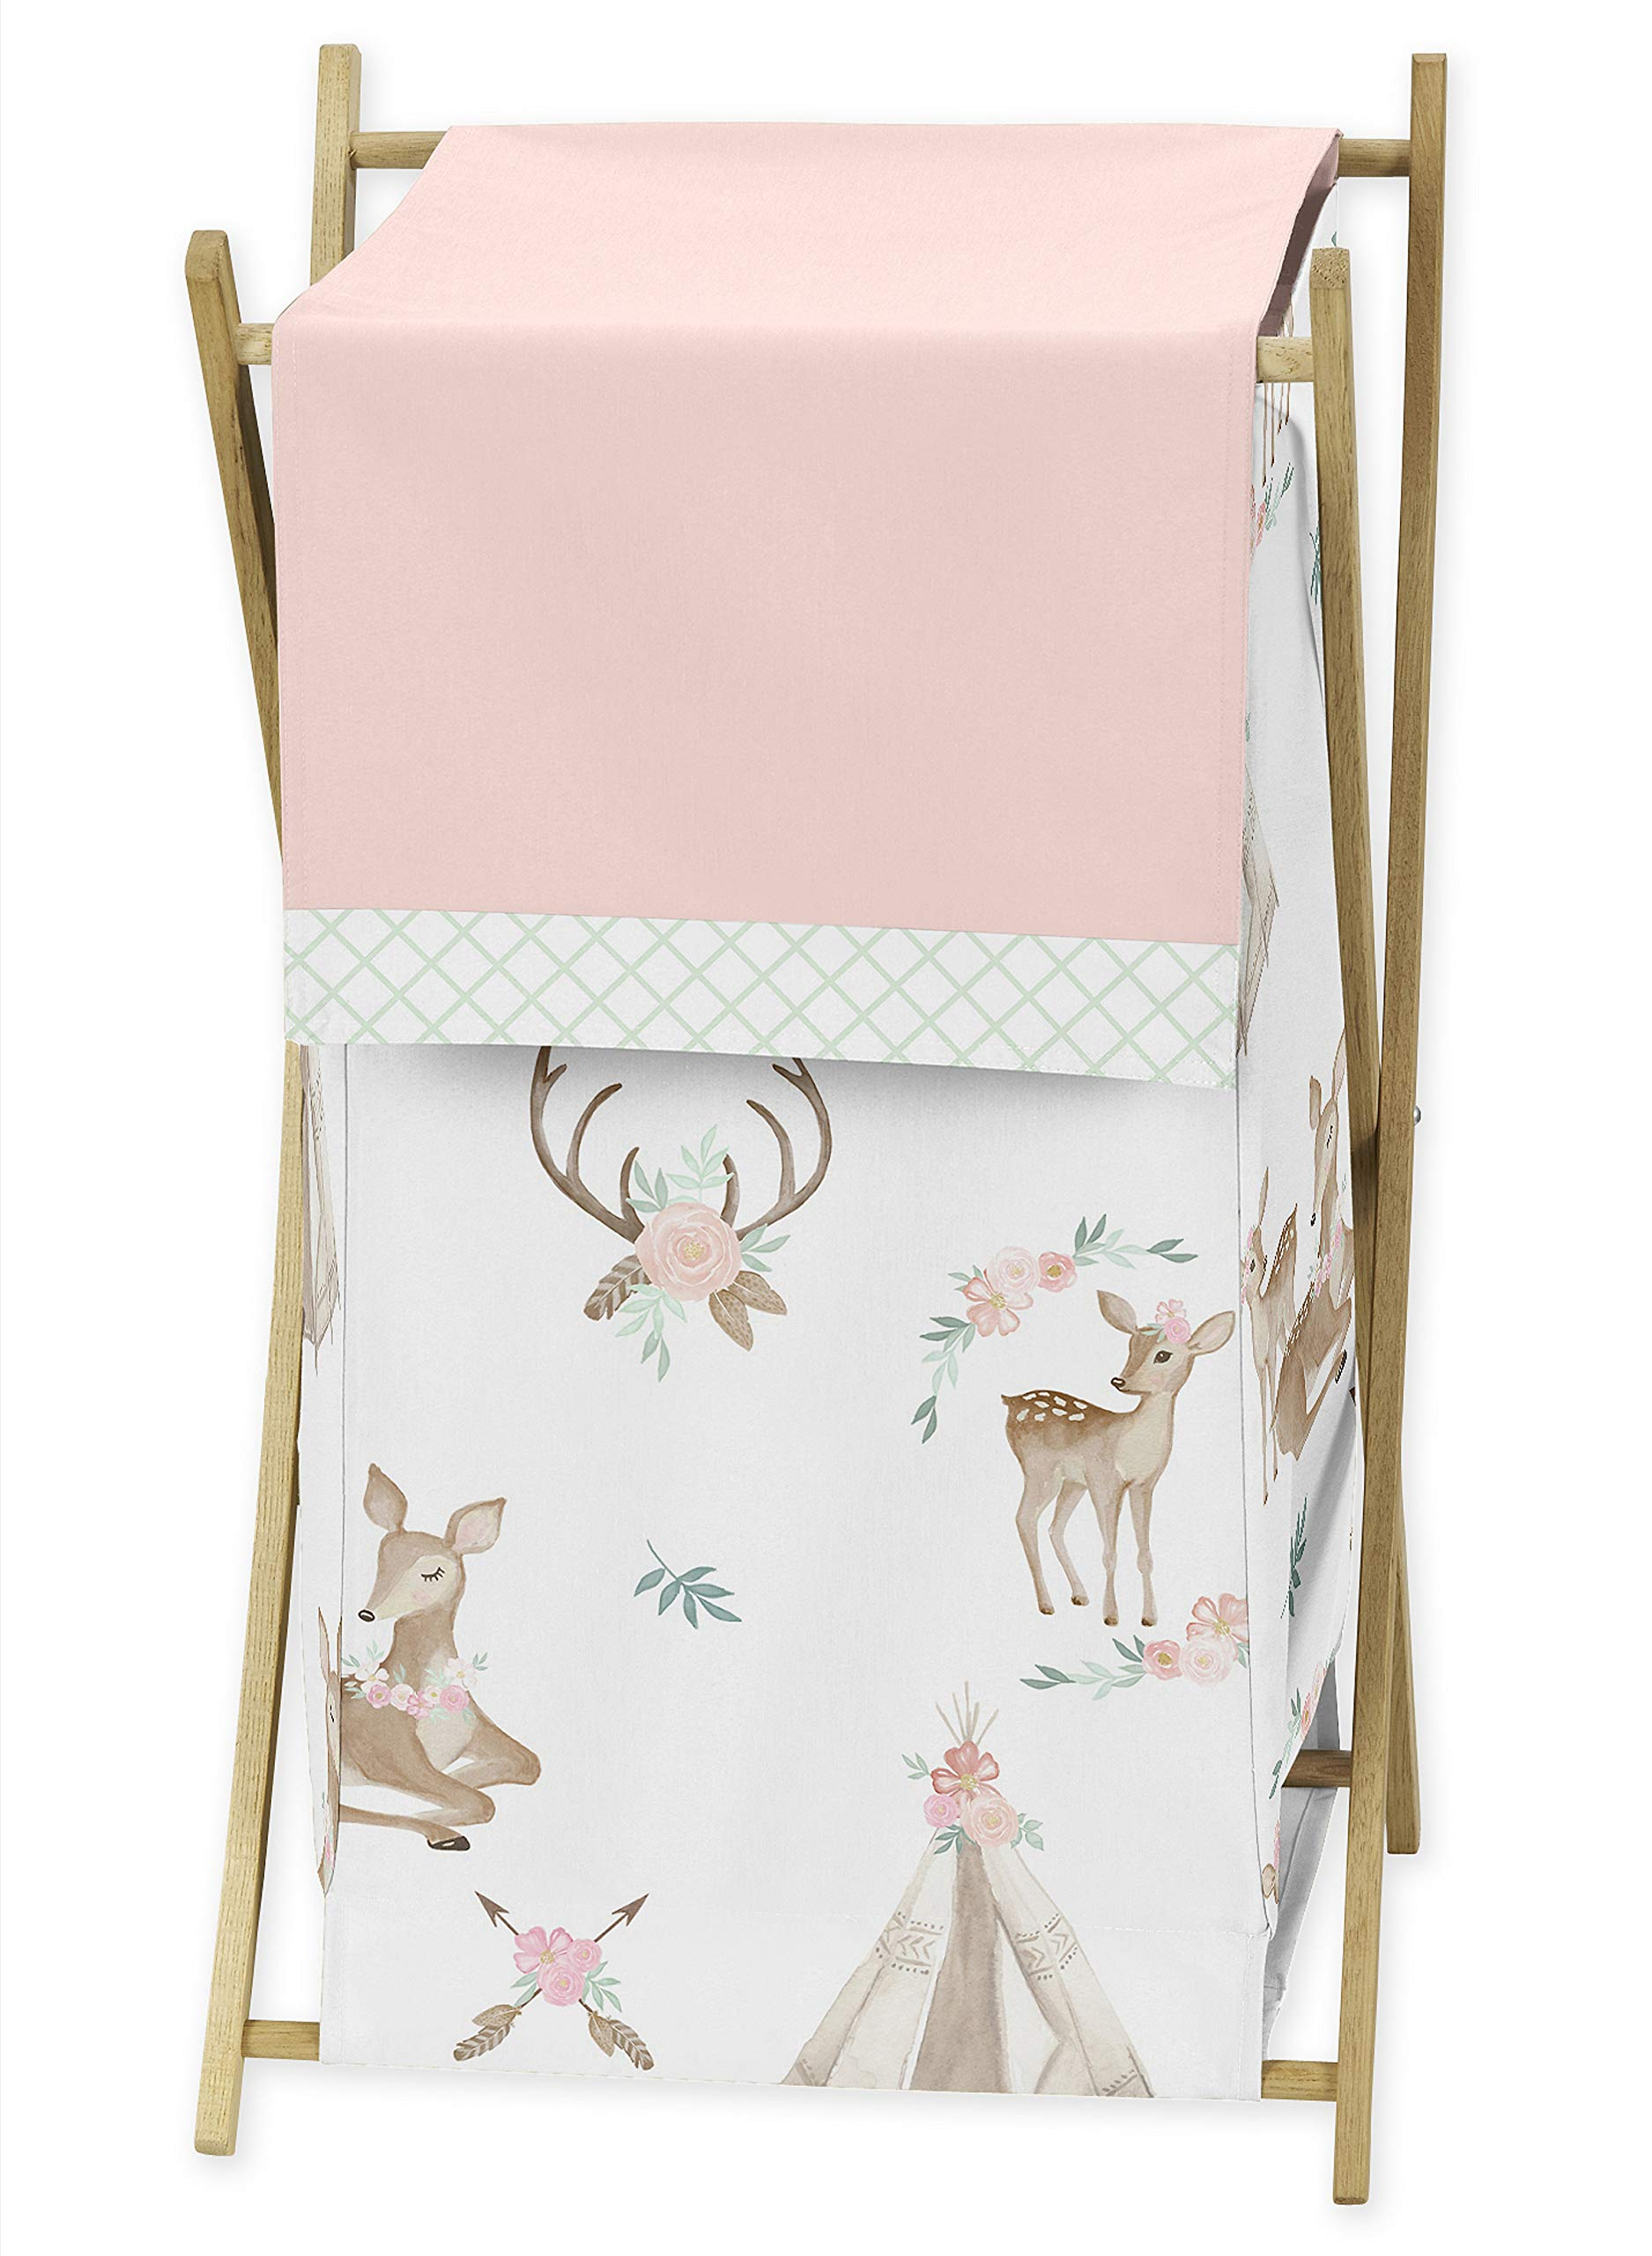 Sweet Jojo Designs Blush Pink, Mint Green and White Boho Baby Kid Clothes Laundry Hamper for Woodland Deer Floral Collection by Sweet Jojo Designs